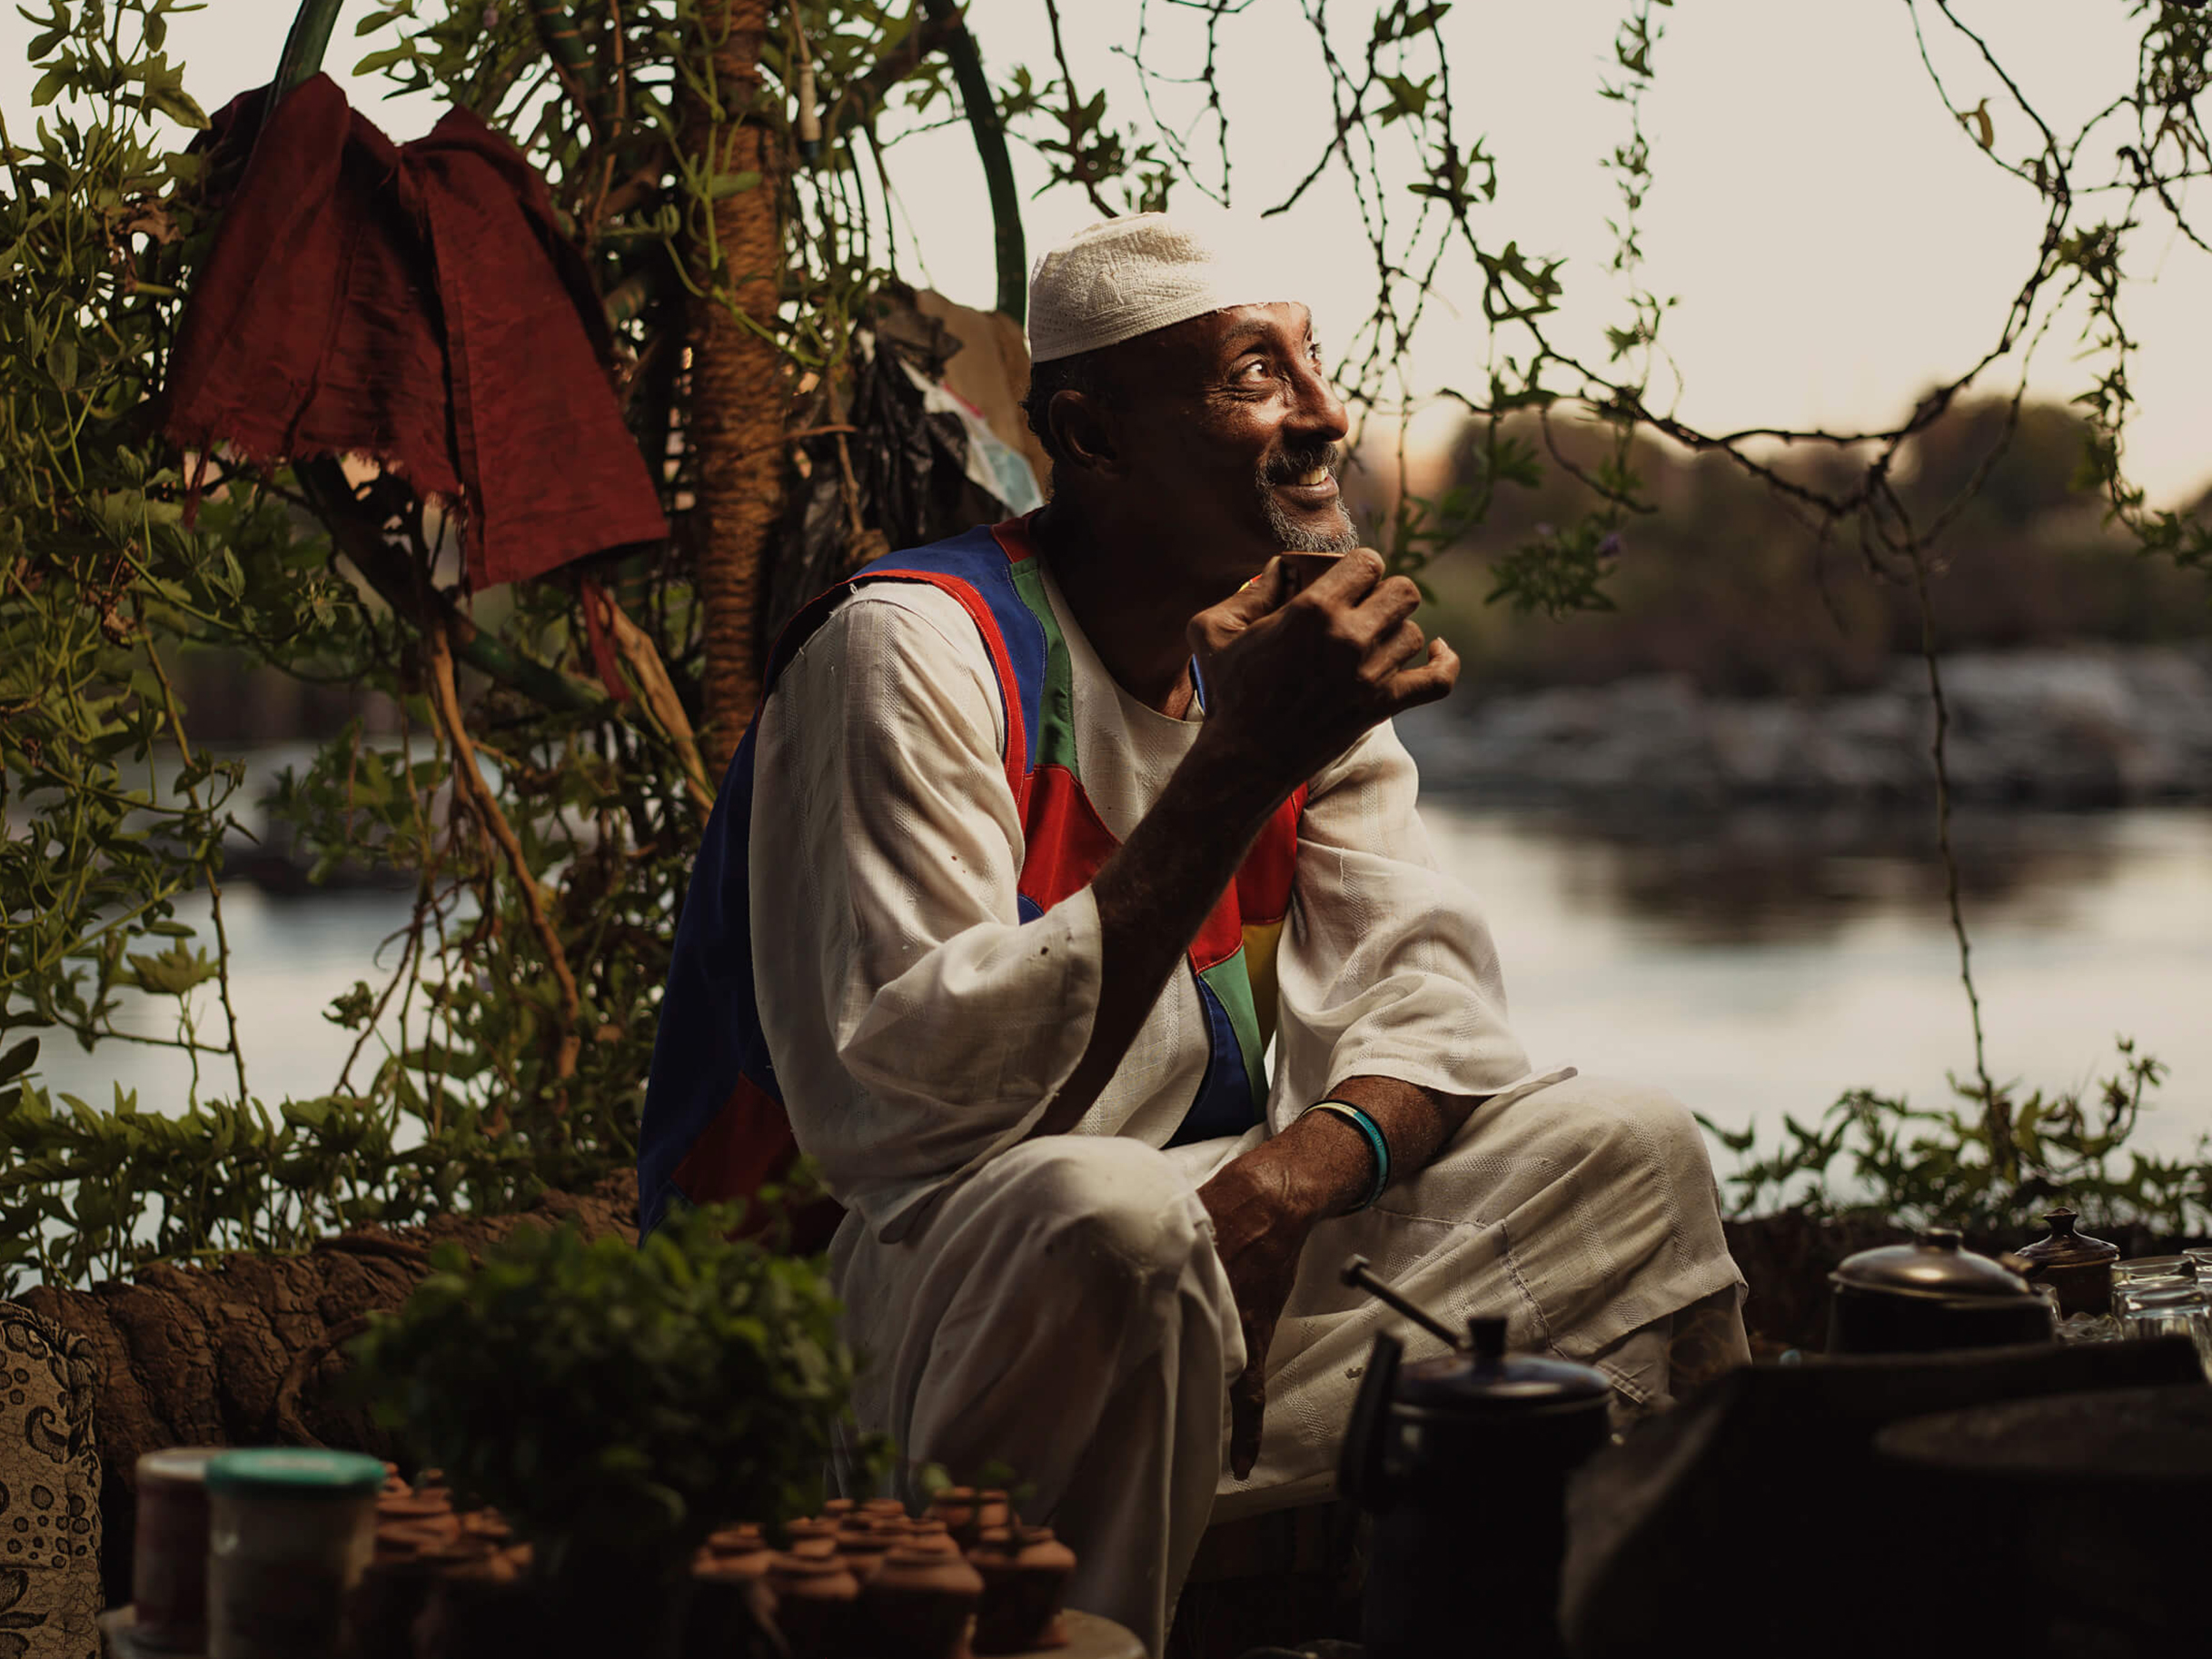 Nile_River_People_Egypt_0007